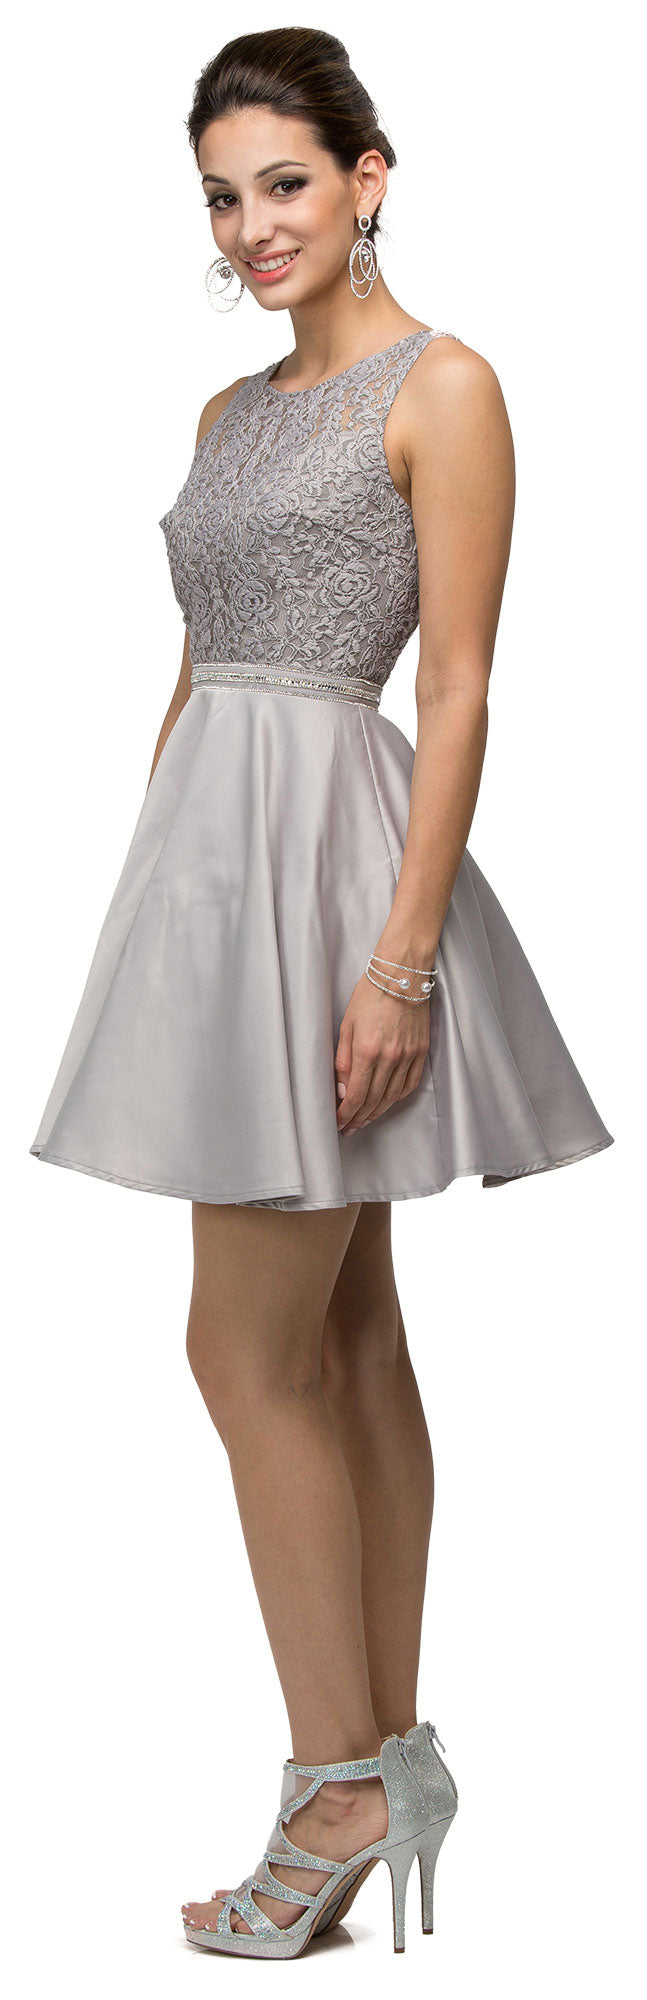 Main image of Lace Bodice Beaded Waist Short Homecoming Graduation Dress